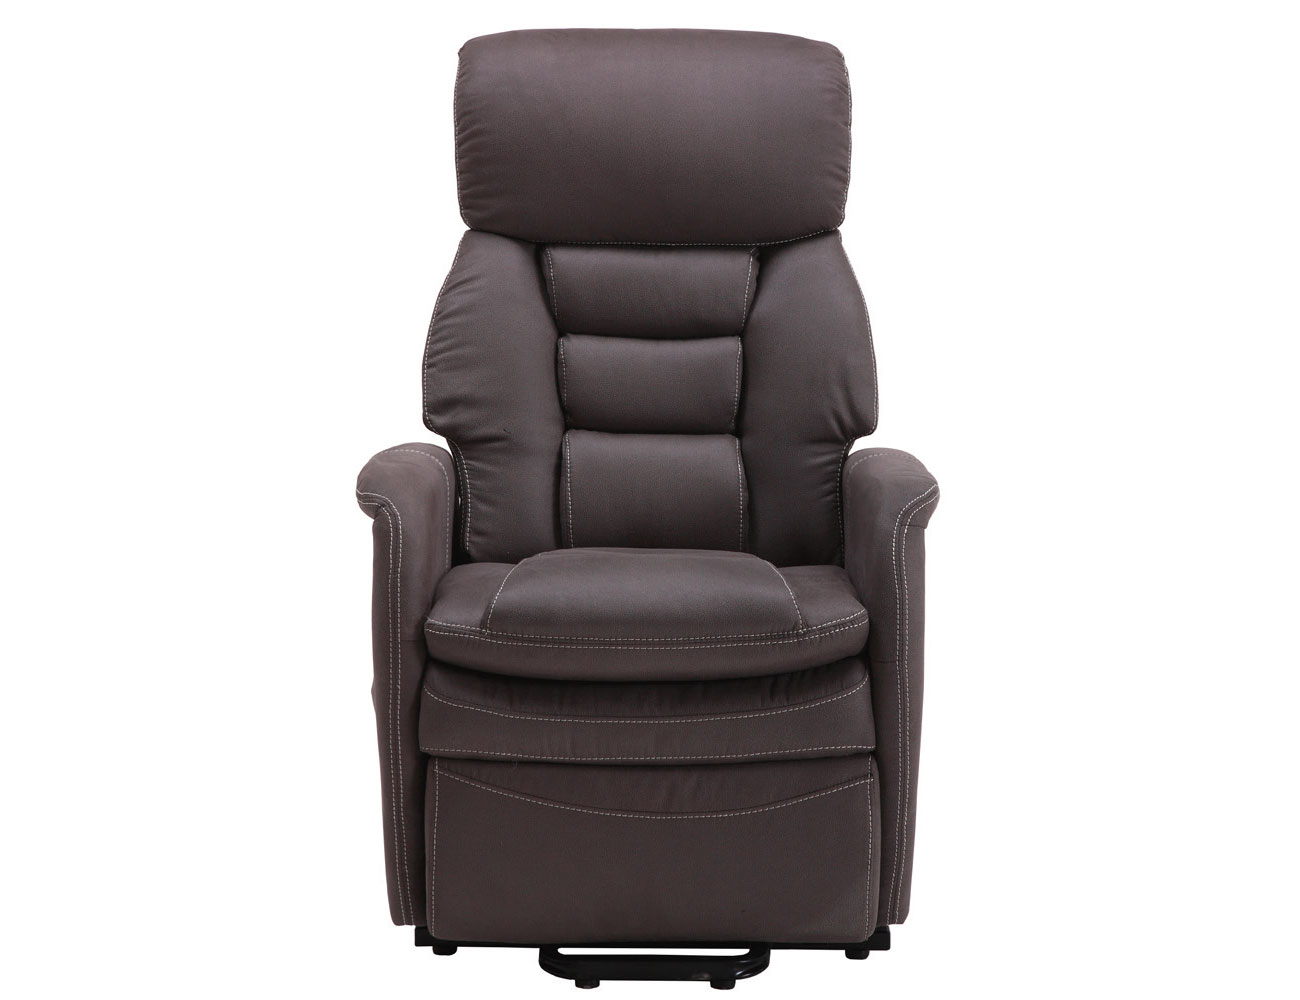 Sillon power lift levanta personas 2 motores